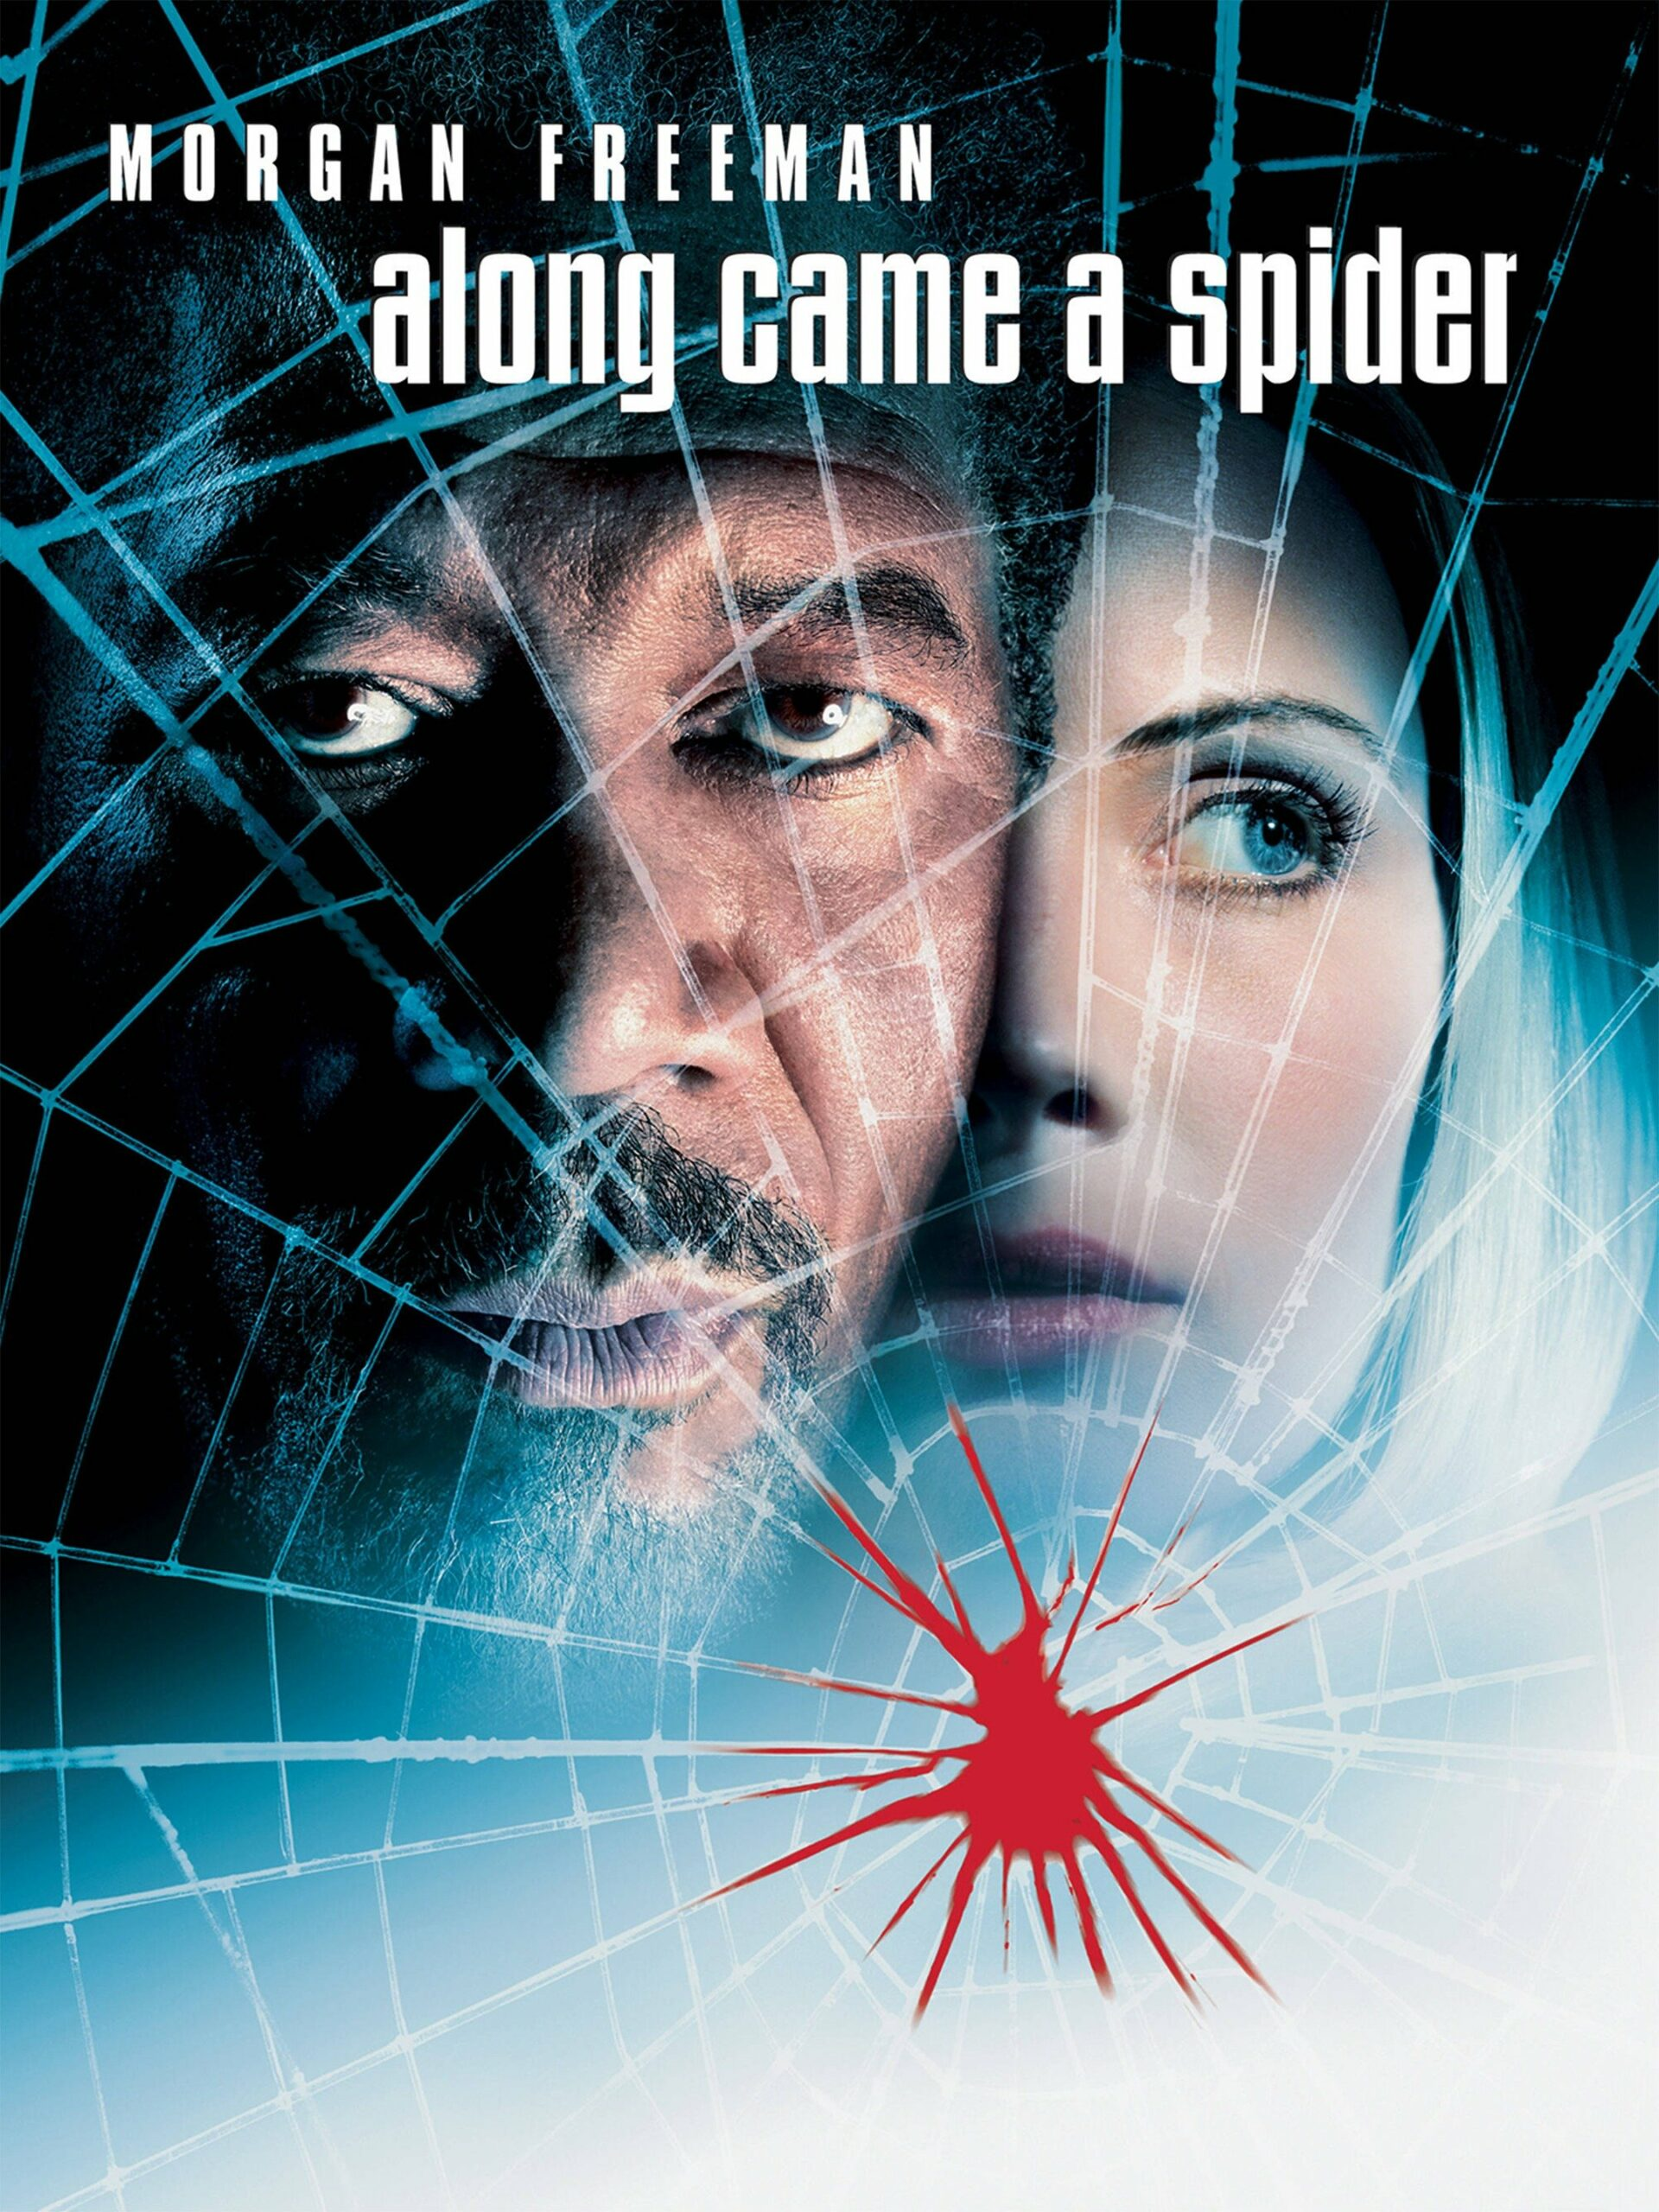 The Stack-Up: Along Came A Spider